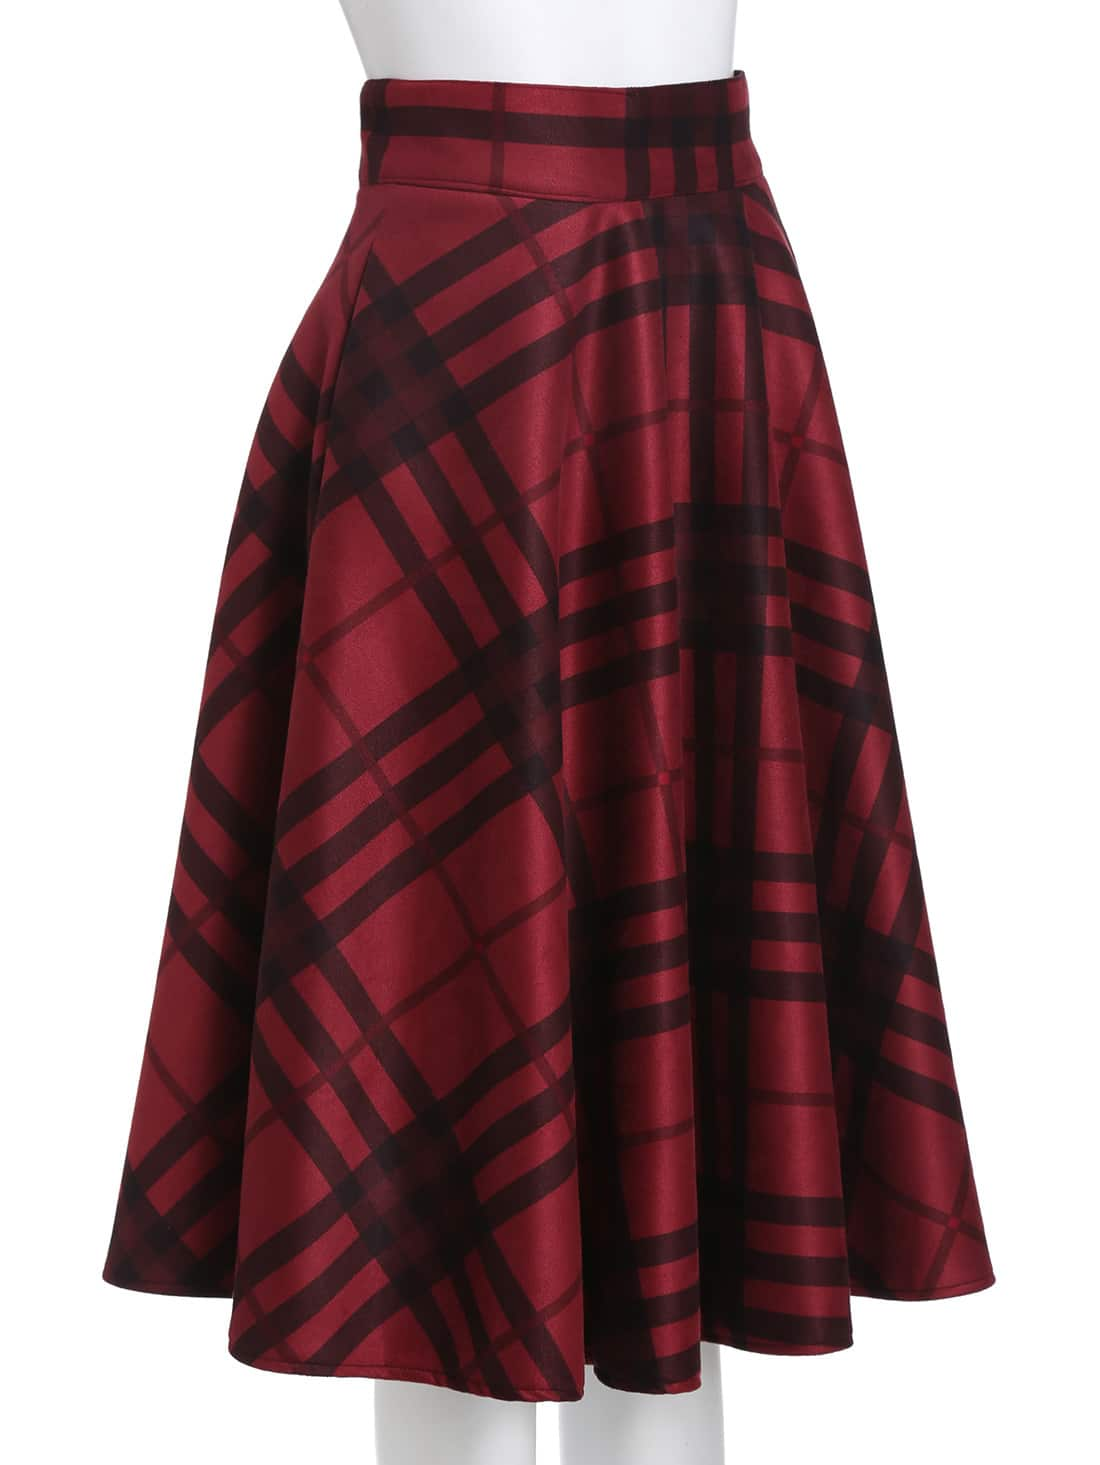 Plaid Skirts For Women. Plaid skirts for women offer a fun way to brighten up the wardrobe with a timeless 0549sahibi.tkble in many lengths, these skirts pair easily with leggings or tights, enabling wearers to experiment with an on-point layered outfit.